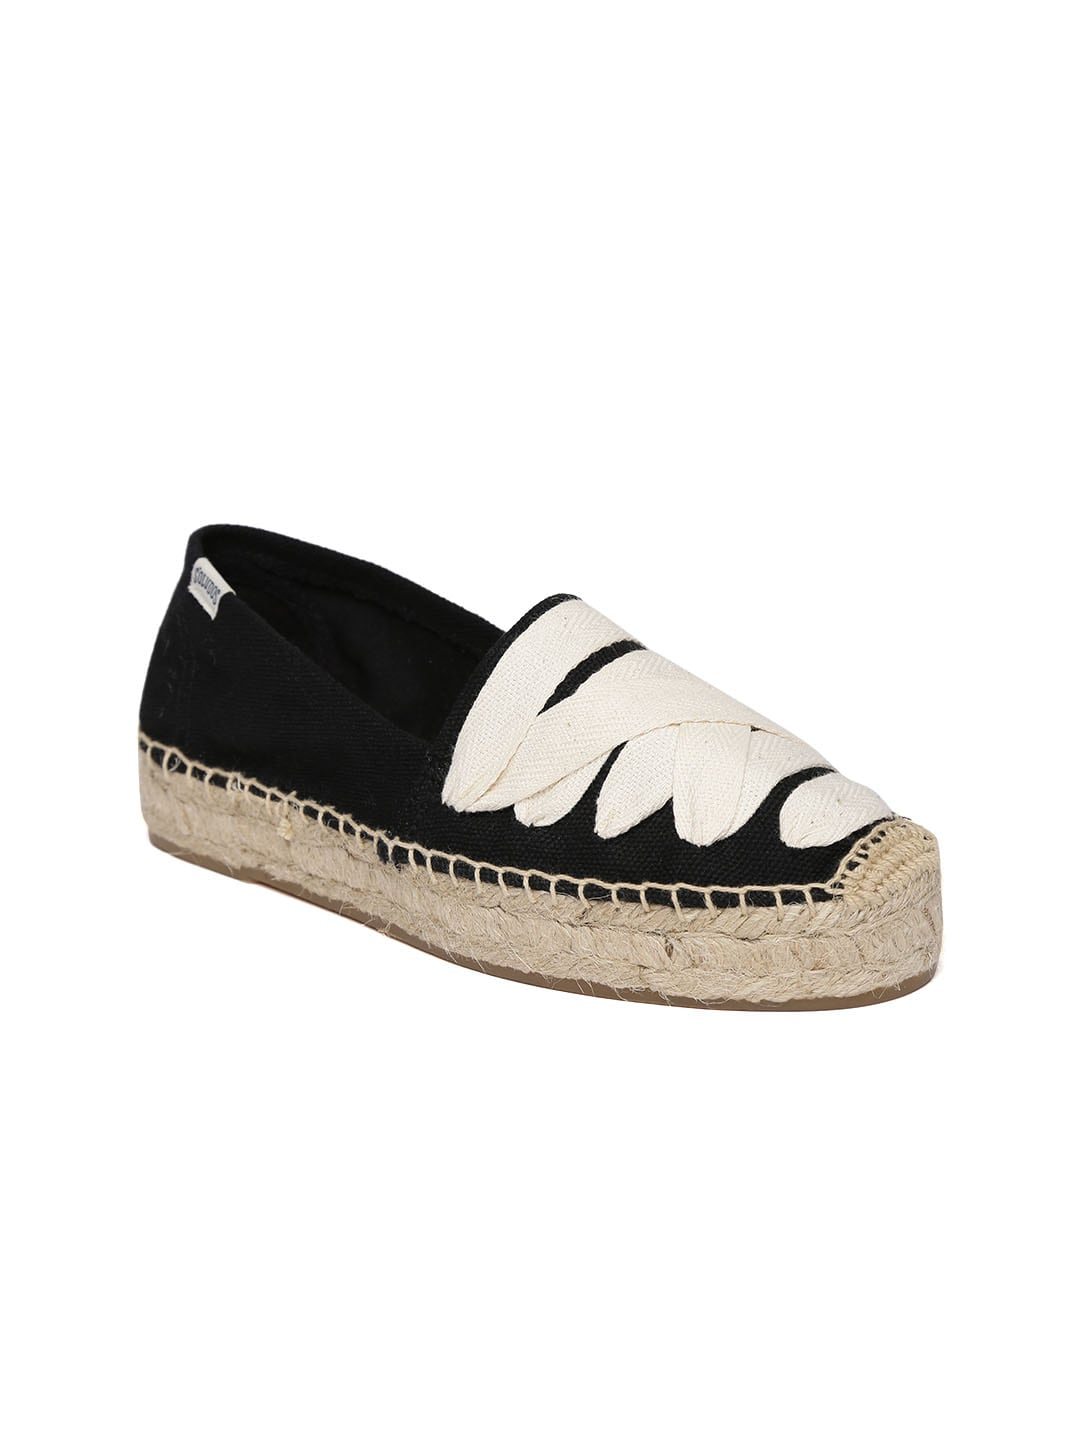 ec64cd05fac Toe Shoes - Buy Toe Shoes online in India